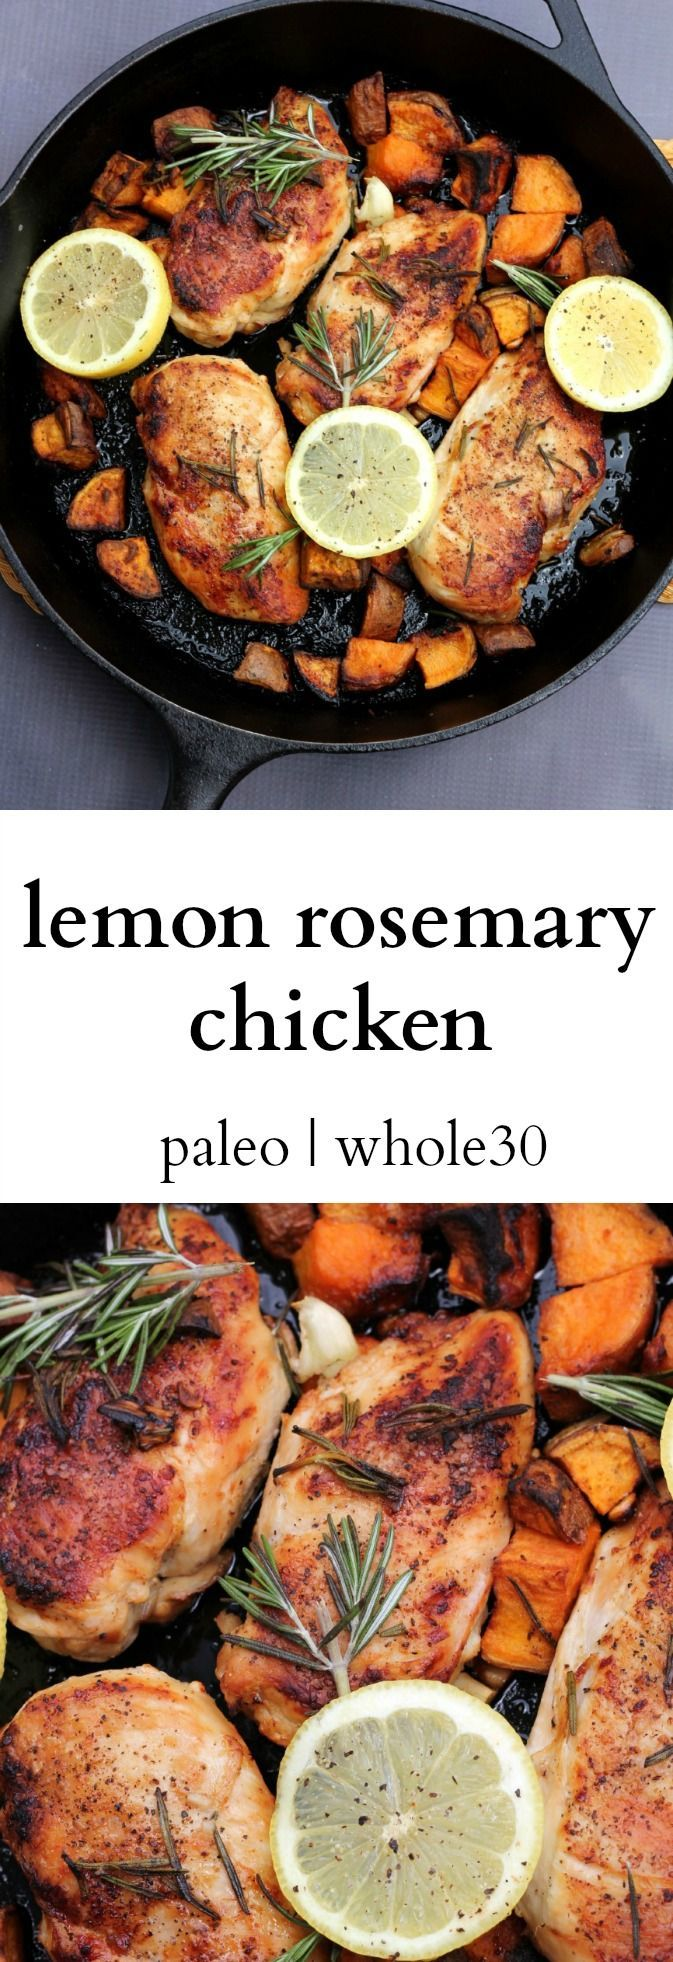 The perfect one pan meal. This is a Paleo dinner and Whole30 dinner! Sure to satisfy everyone in the family.